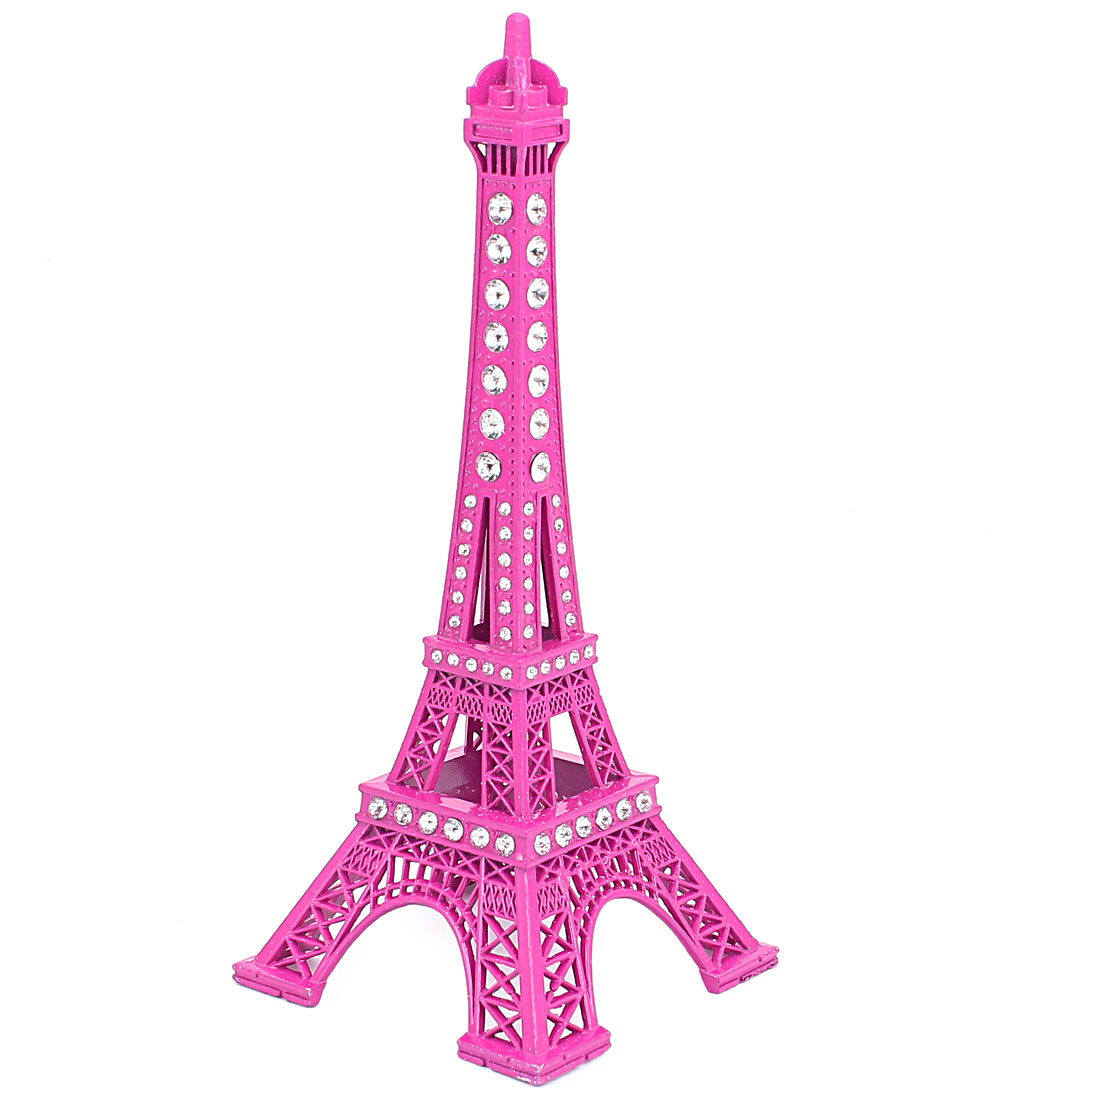 "Rhinestone Detail Mini France Paris Eiffel Tower Construction Model Ornament 7"" 18cm Height Magenta"